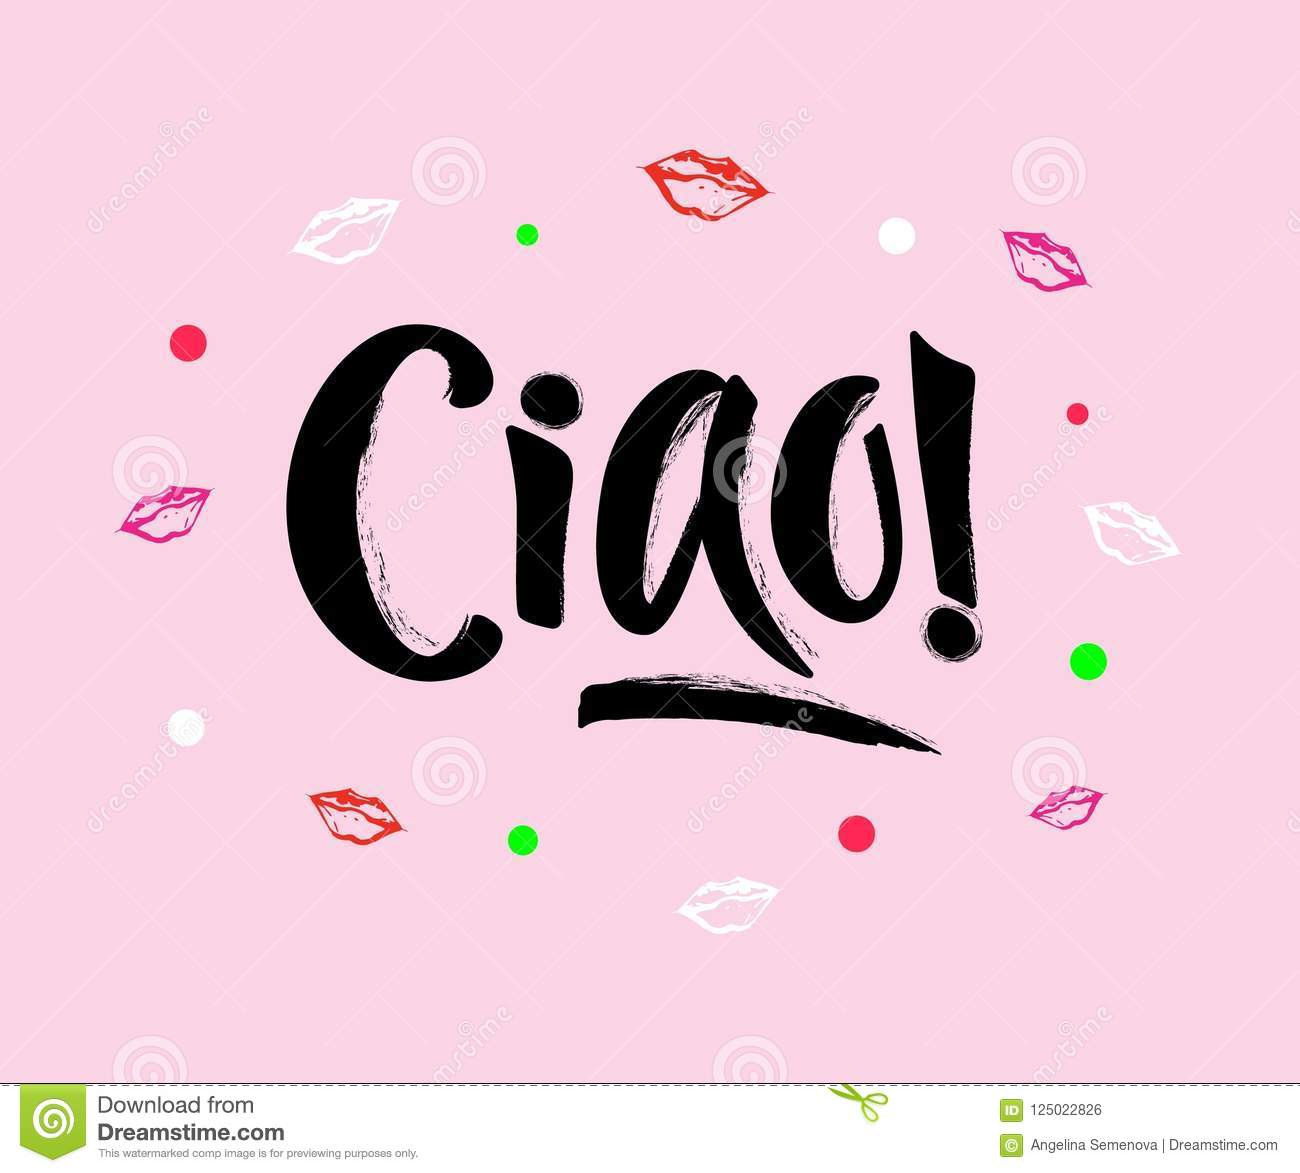 Hand Lettering Of The Word Ciao On Pink Background With Decorated